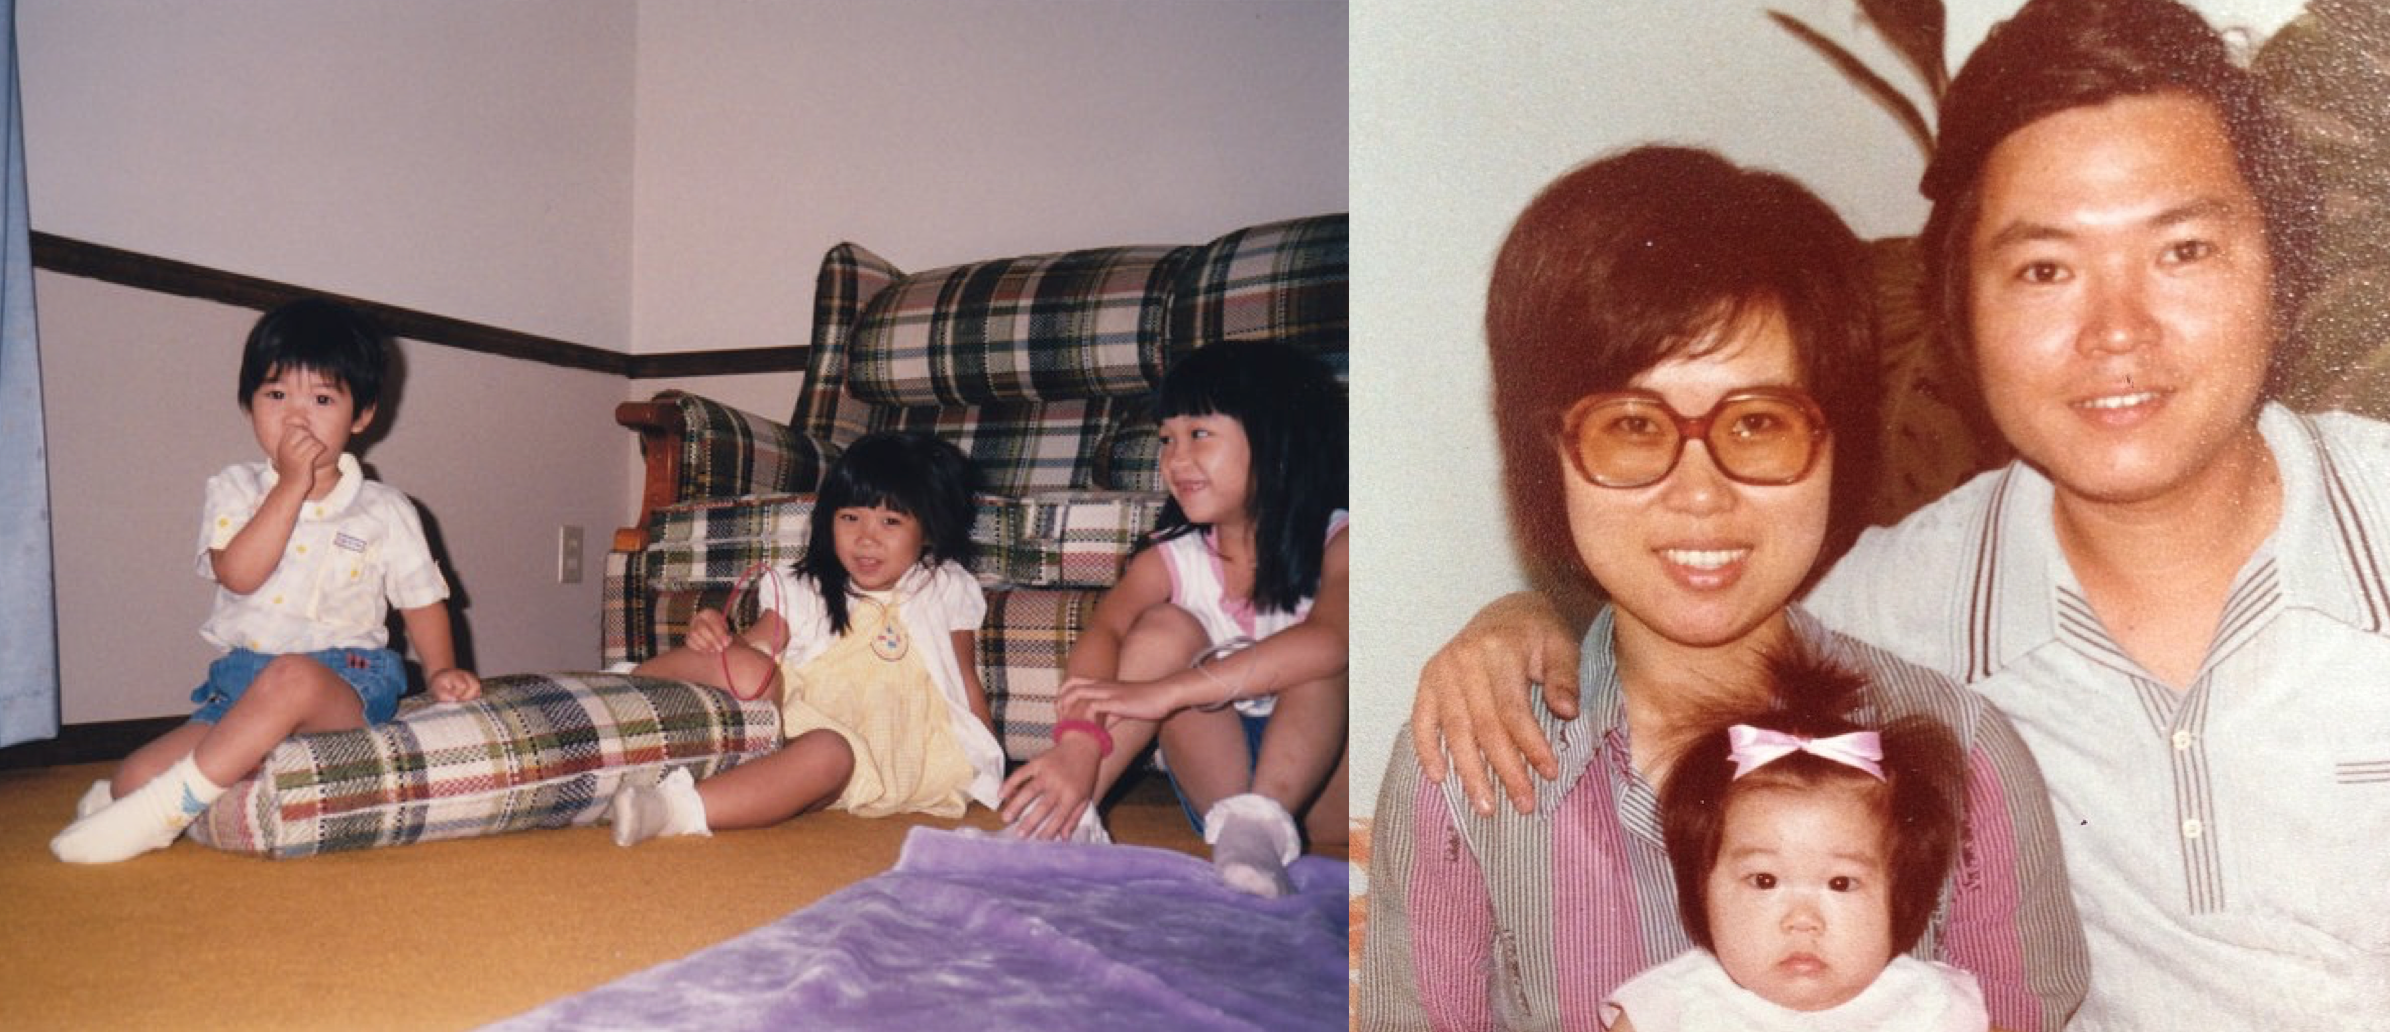 LEFT TO RIGHT: My brother Joey, Kym, and I. My mom, dad and little ol'me. NOTE: My youngest sister Linda ( we are 12 years apart) is not shown herebecause I felt it would disruptthe throwback aesthetics. Sorry Linda! ;-)